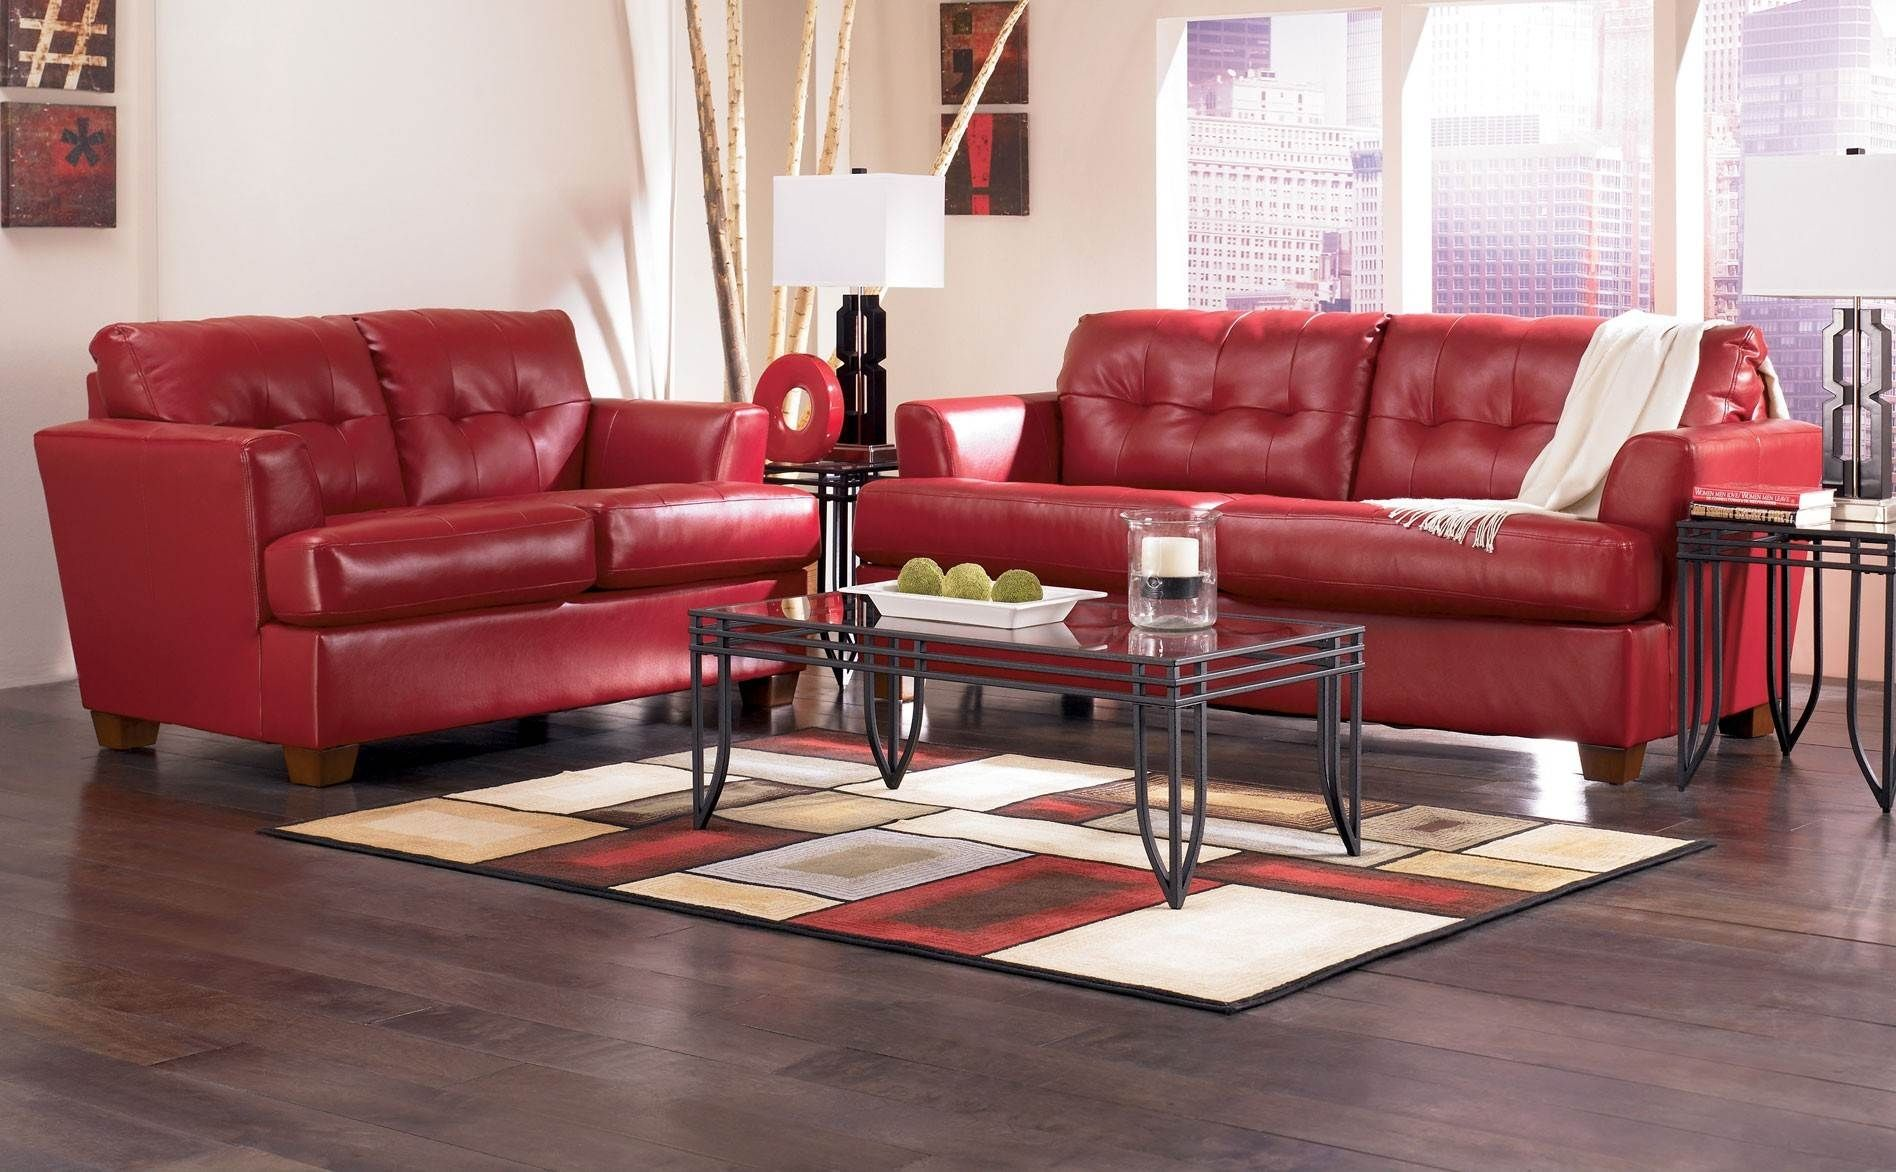 Decorating With A Red Leather Sofa   Living room leather ...